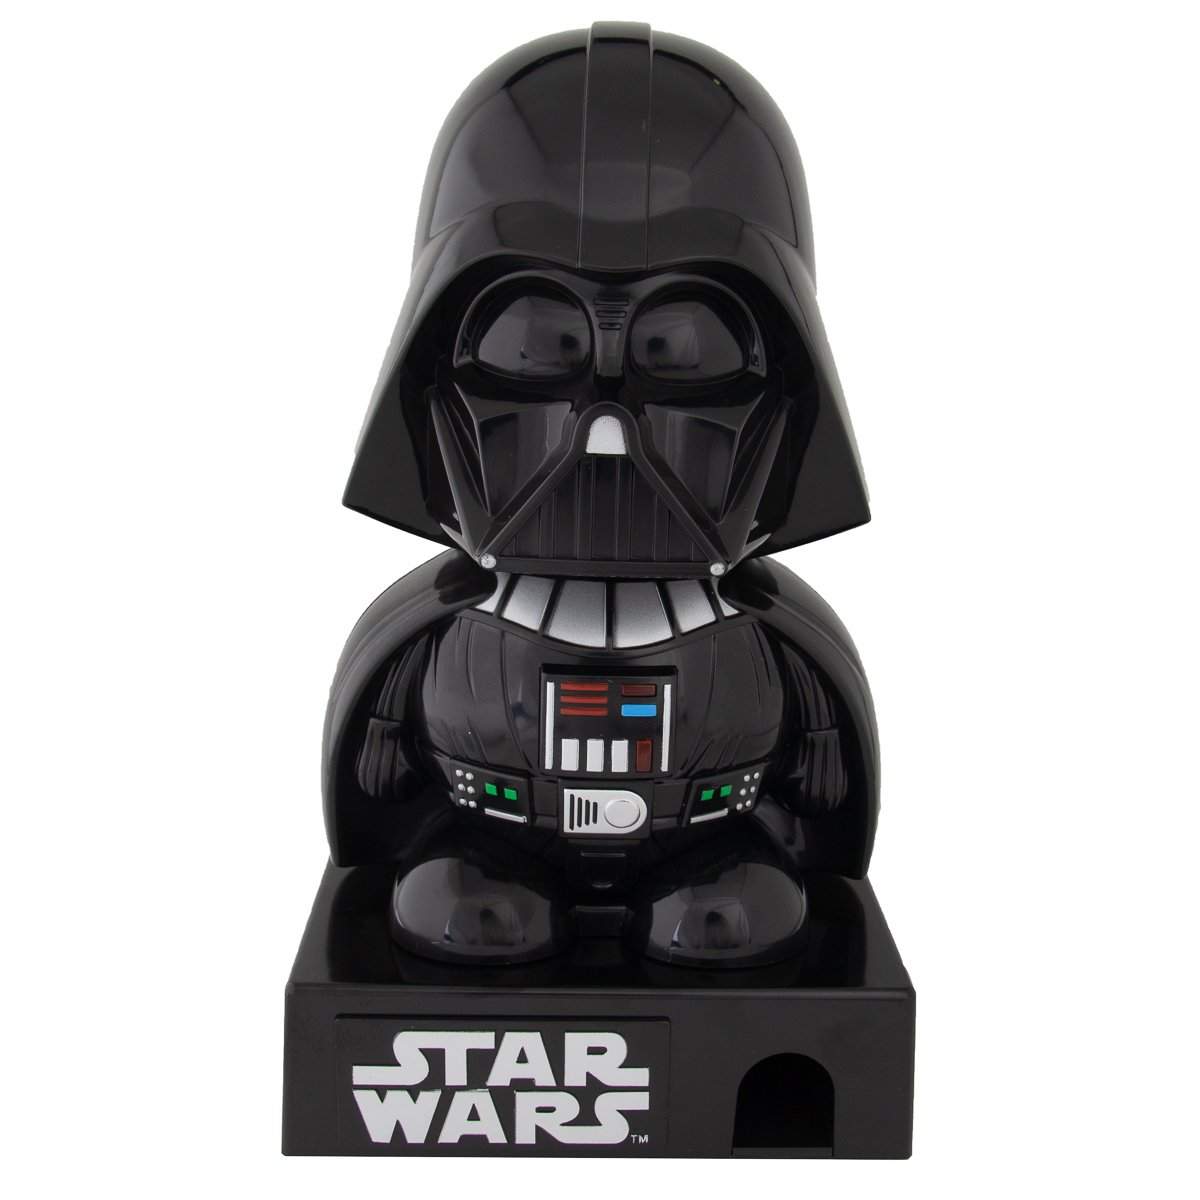 Star Wars Darth Vader Mini Gumball Machine Candy Dispenser Toy Lights and Sounds Disney Star Wars